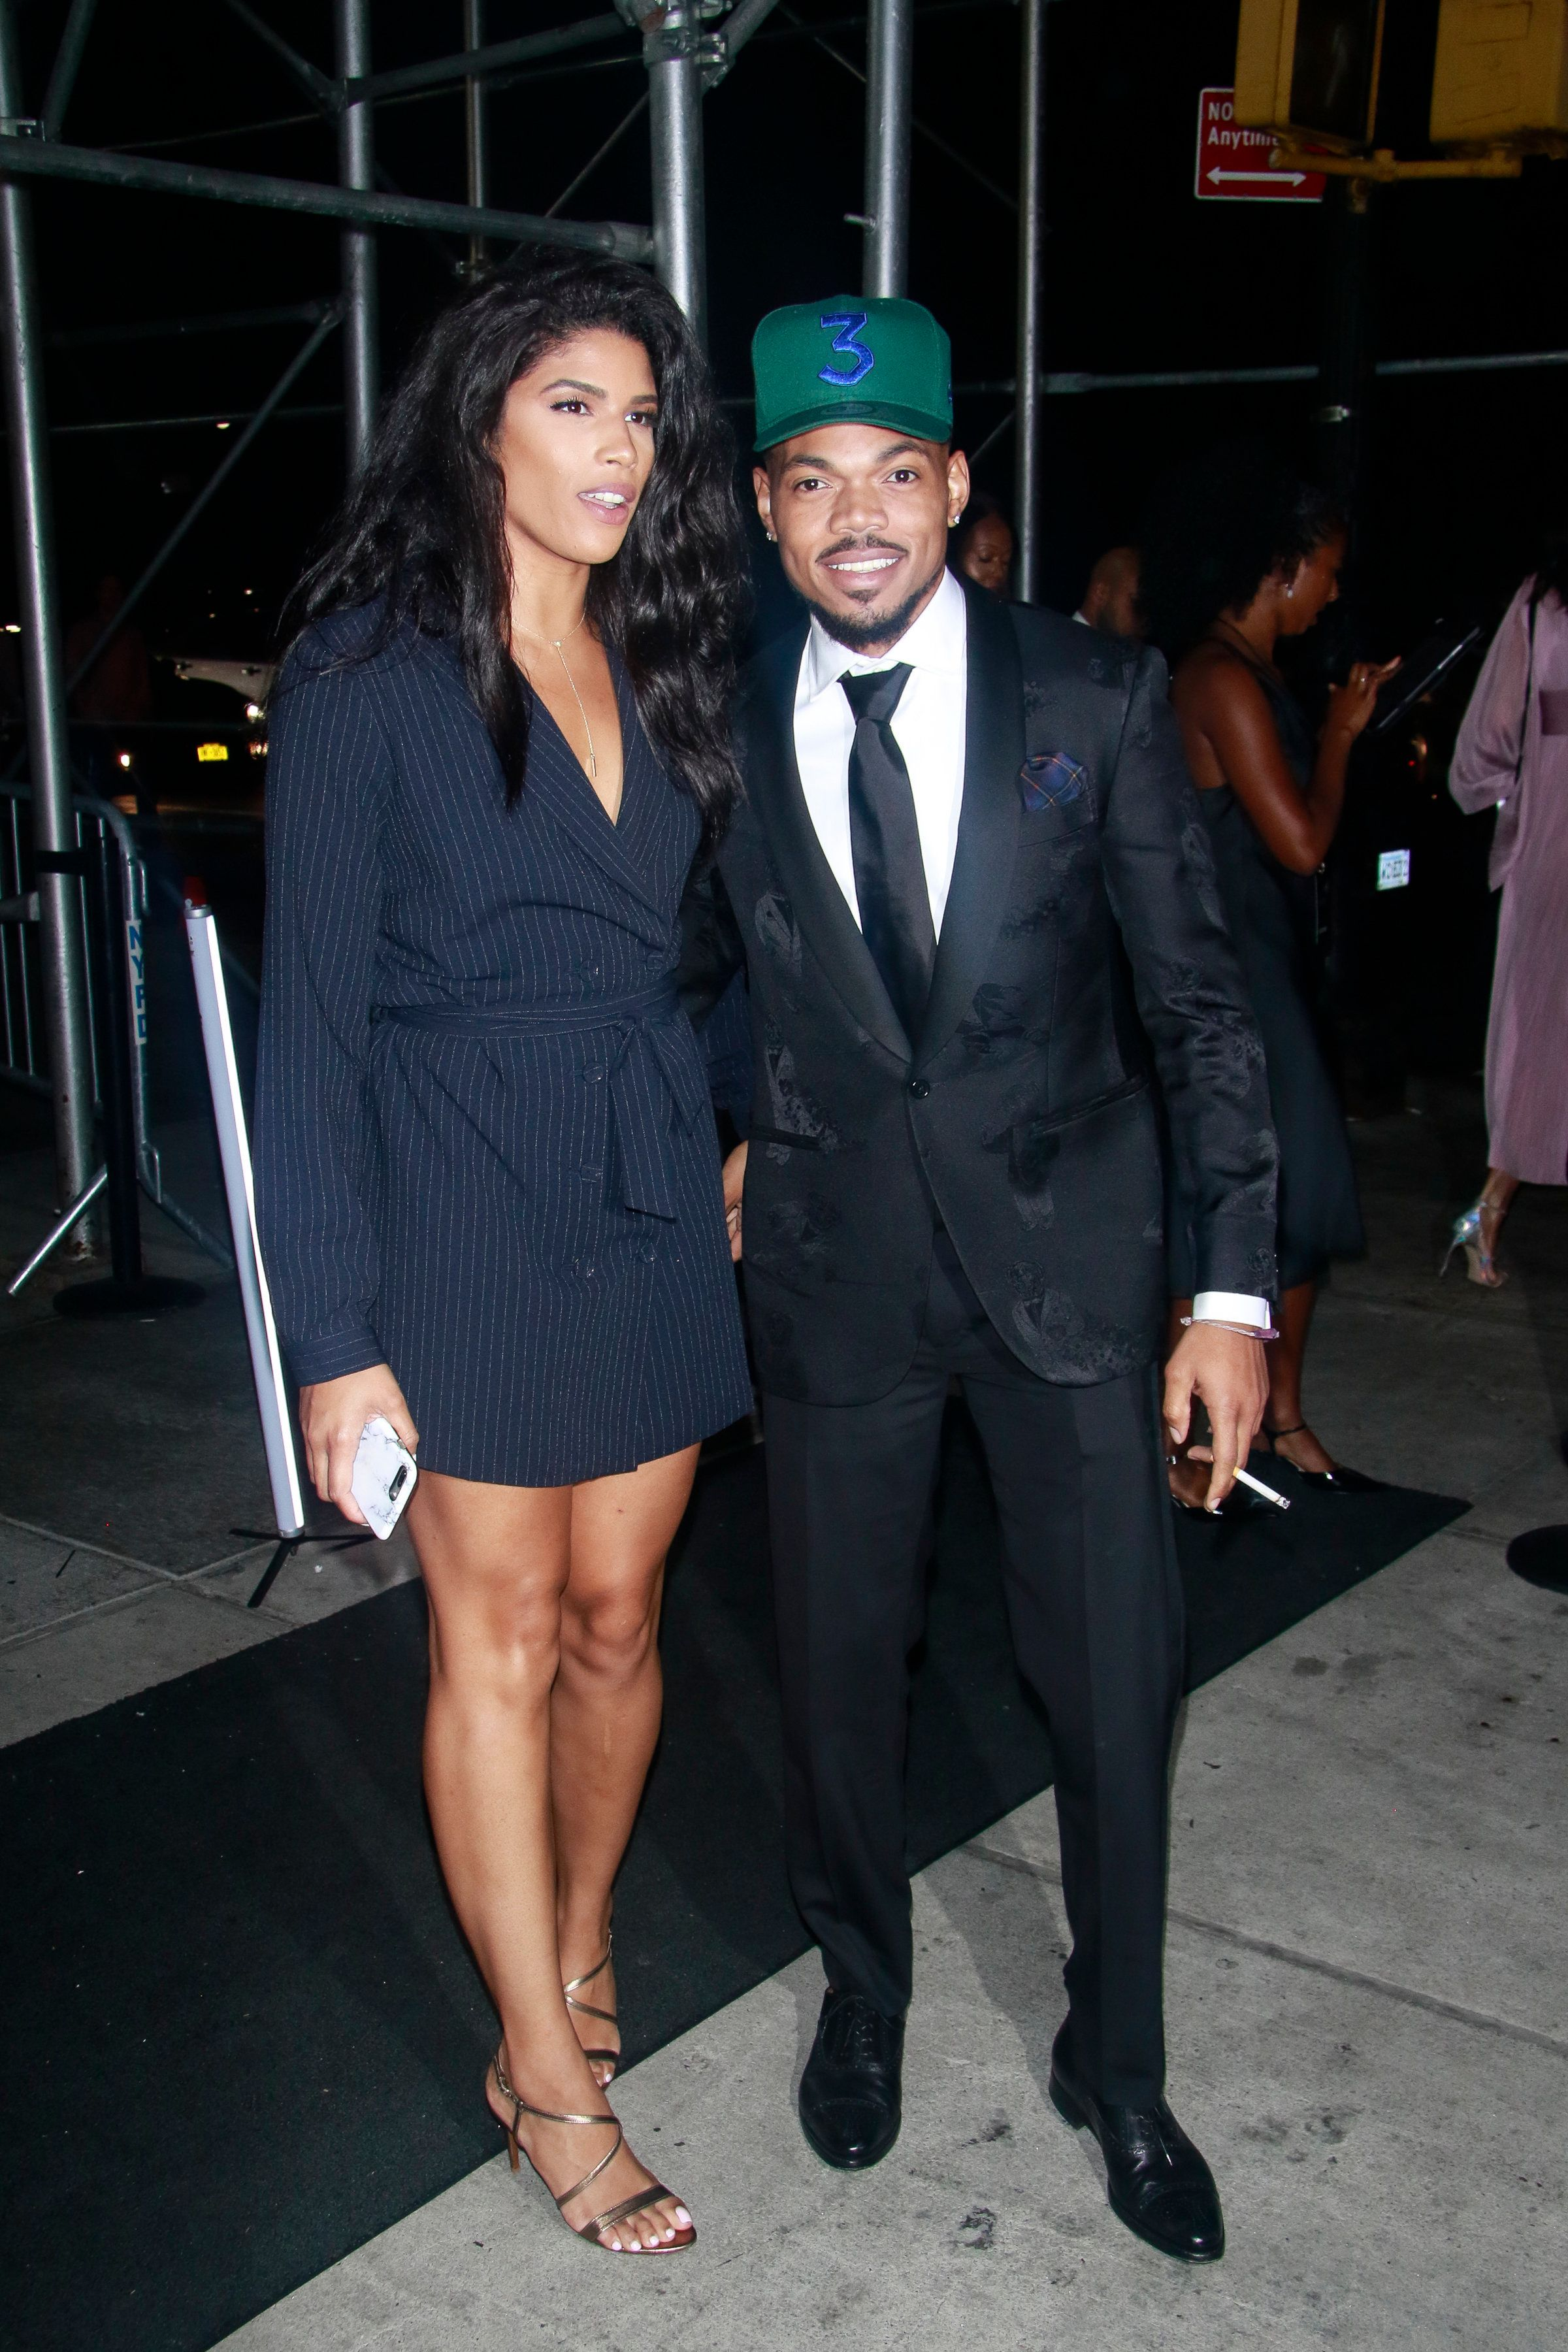 NEW YORK, NY - SEPTEMBER 07: Kirsten Corley and Chance The Rapper the Harper's Bazaar Icons by Carine Roitfeld' party at the Plaza Hotel on September 7, 2018 in New York City. Credit: Diego Corredor/MediaPunch /IPX